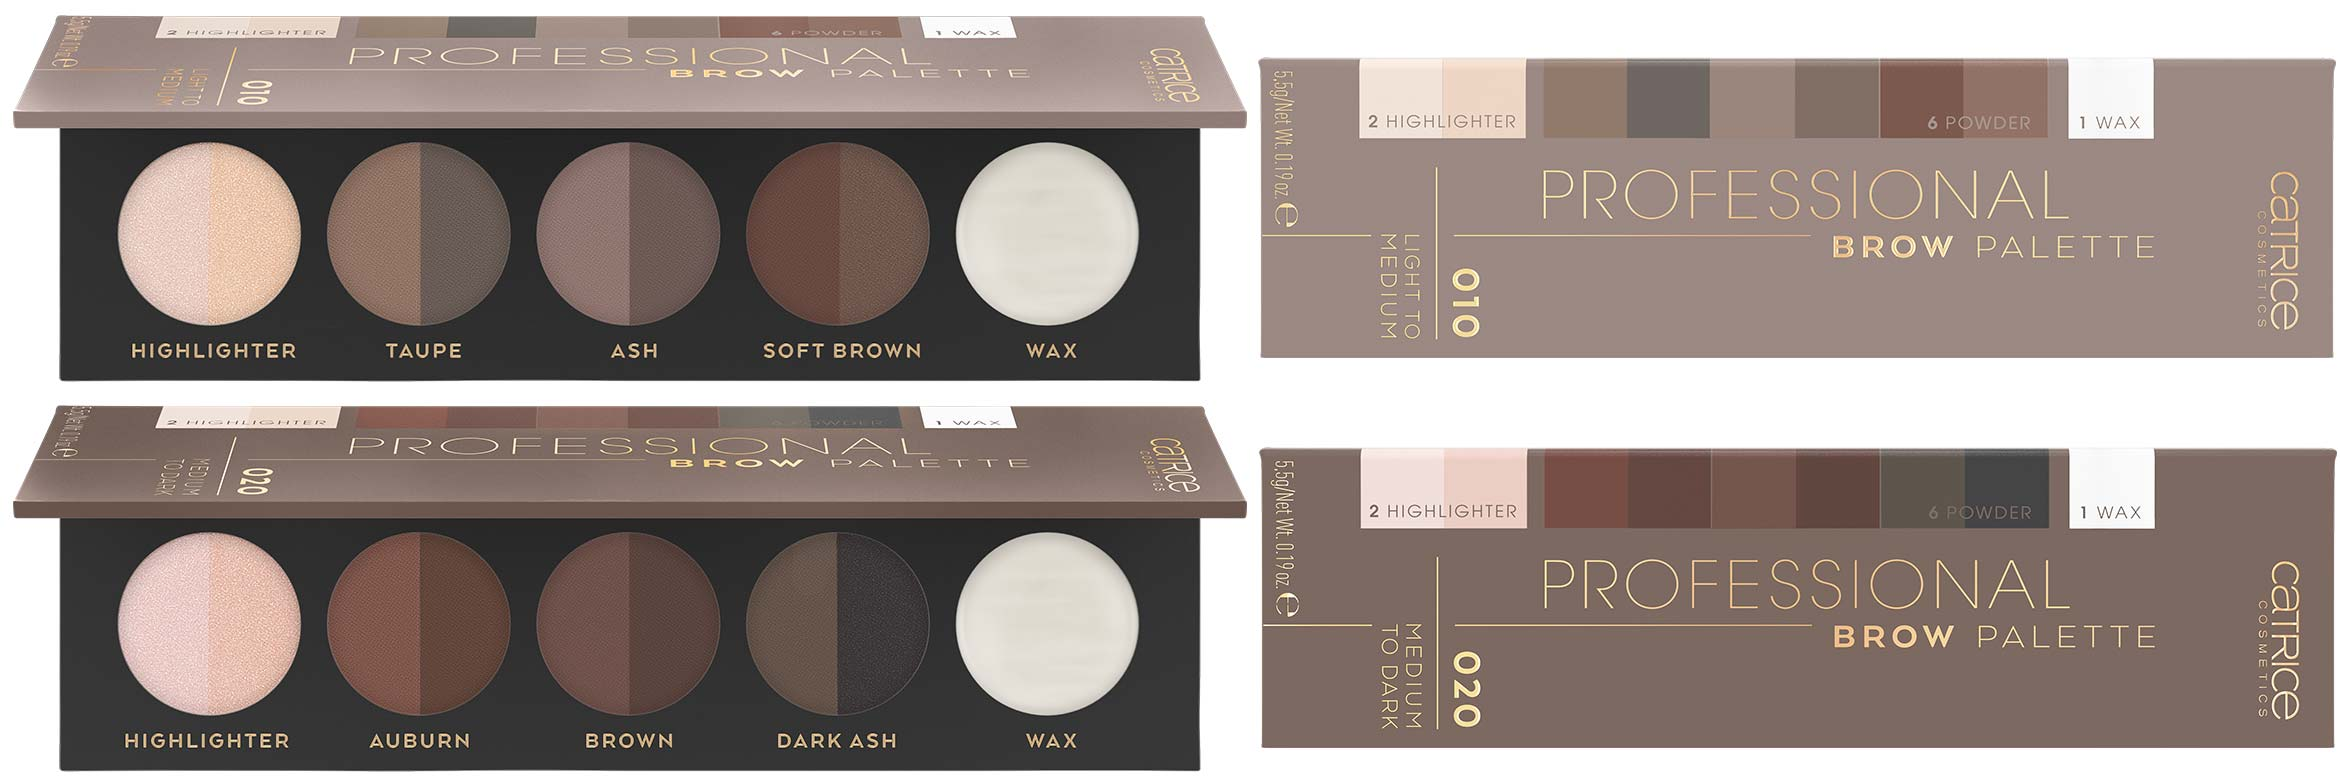 catrice-professional-brow-palette